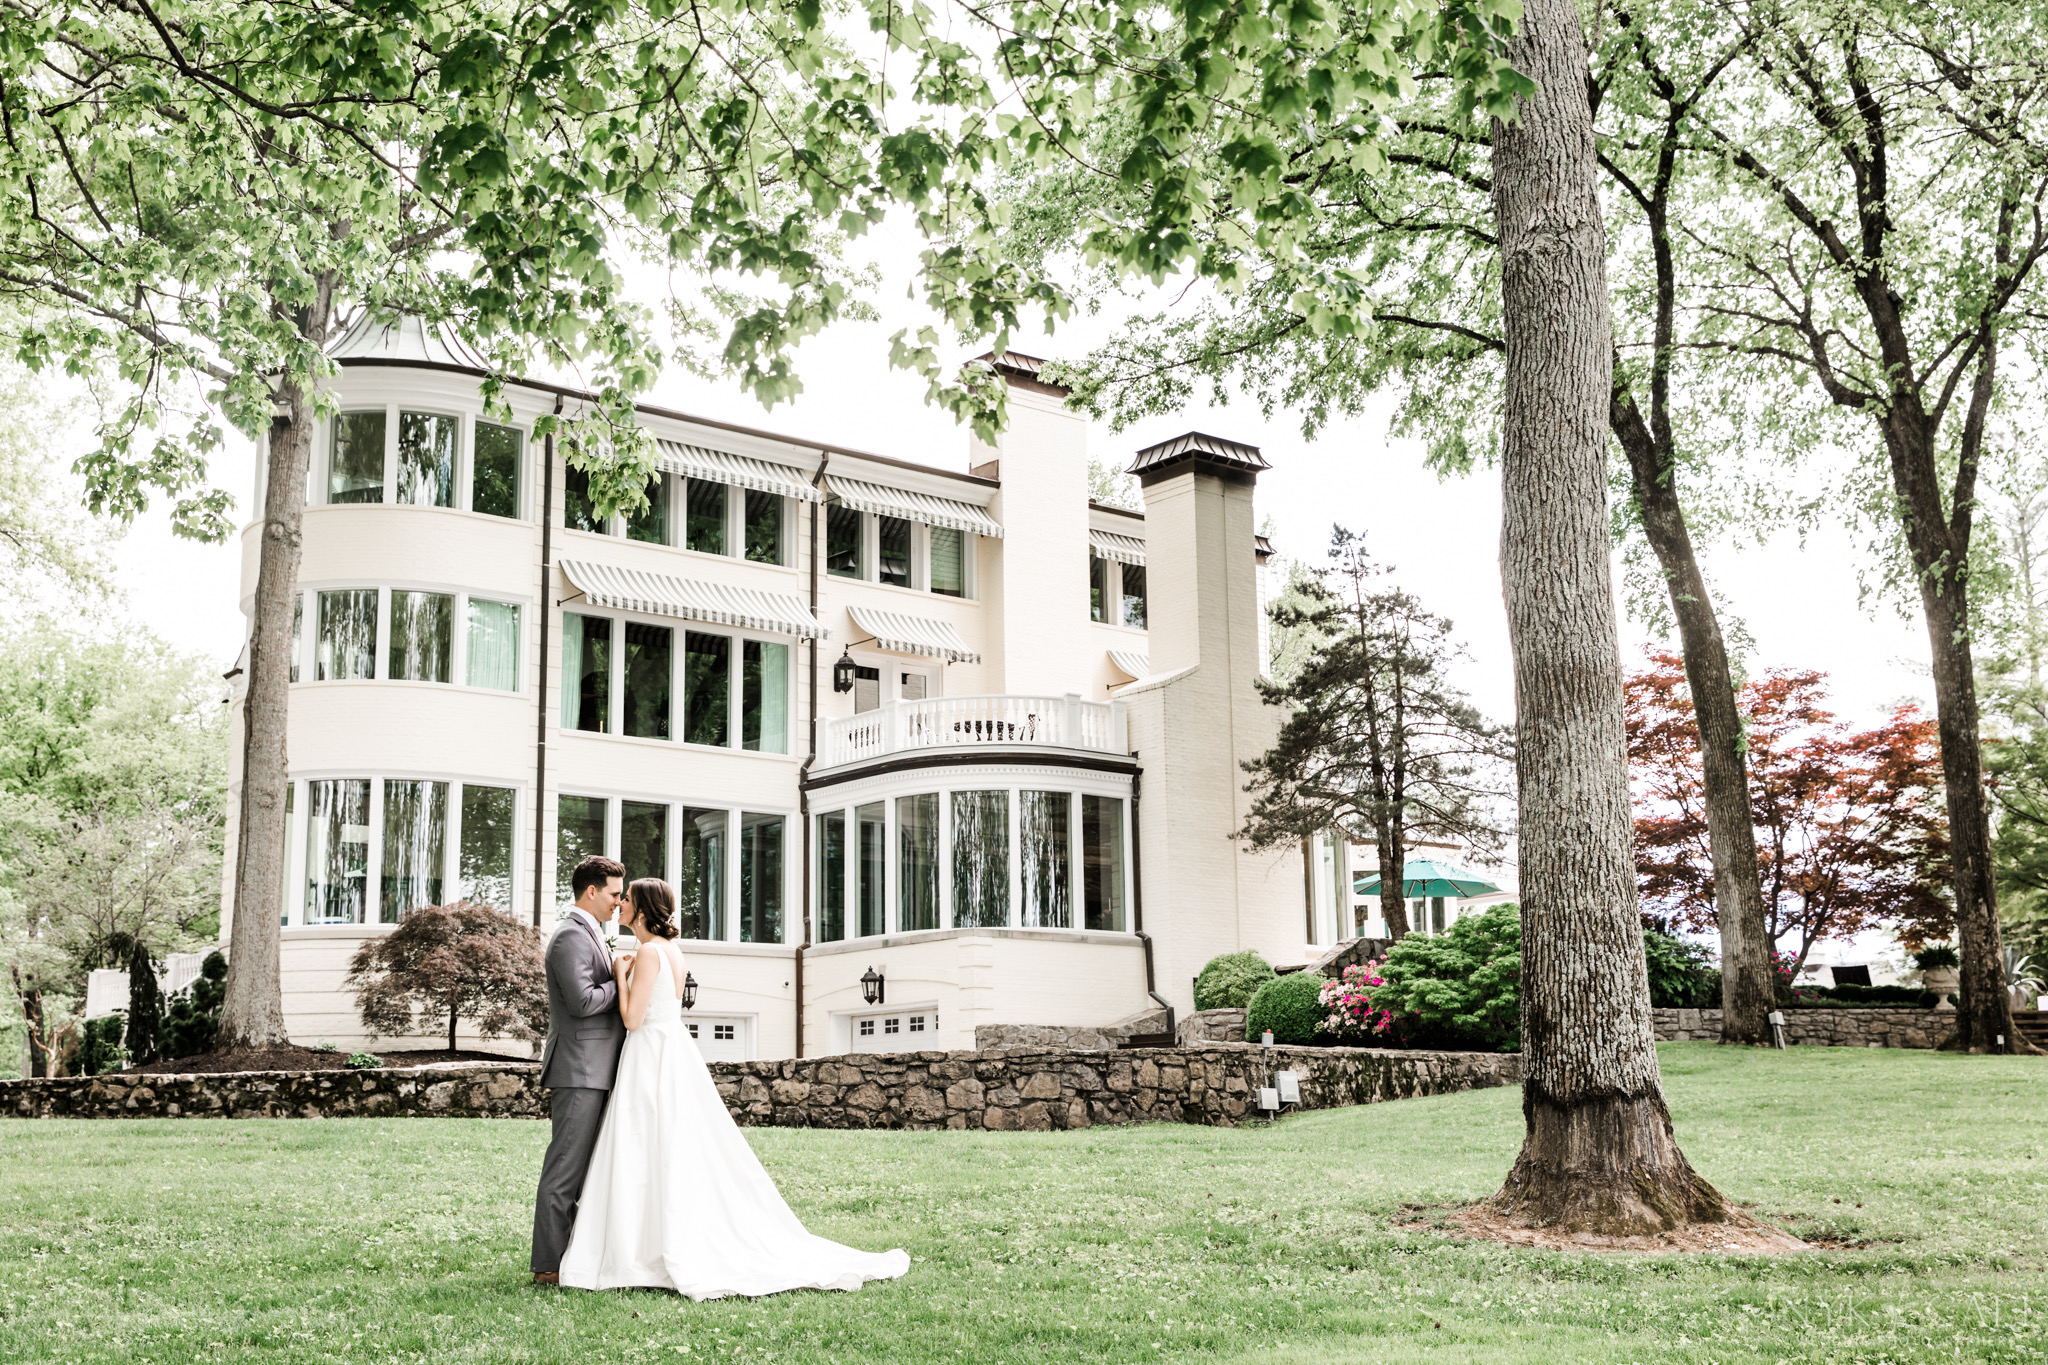 Venue selection is so important - It is so nice when a client comes to us before they have their venue.This way we can help to select a venue that fits them perfectly. It didn't take long for me to know that The Estate at Cherokee Dock would be the perfect backdrop to their wedding weekend!